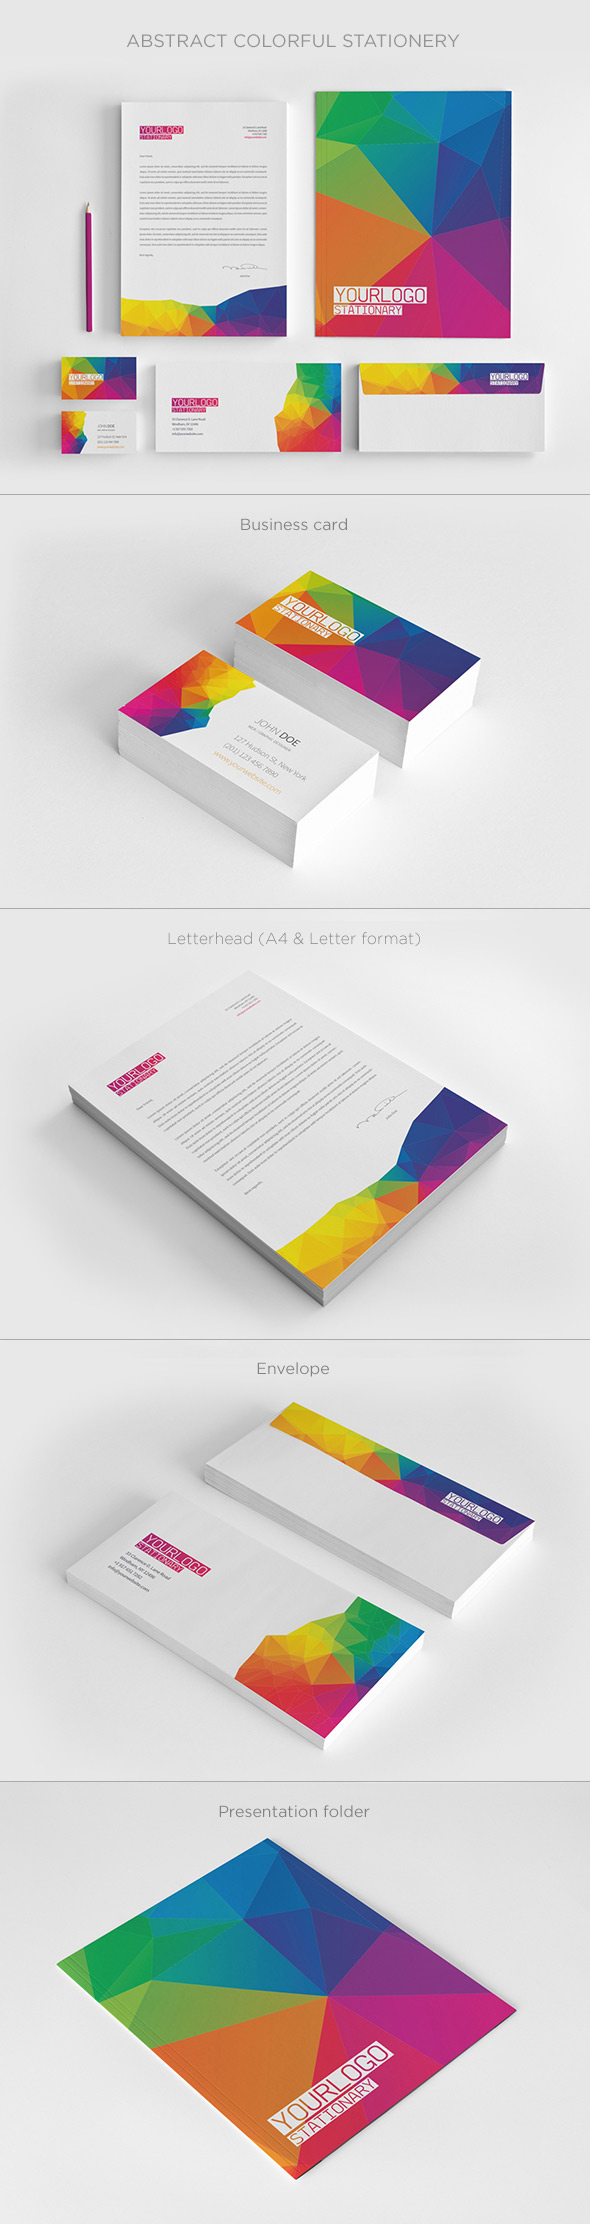 15 Corporate Brand Identity Packages—With Creative Designs